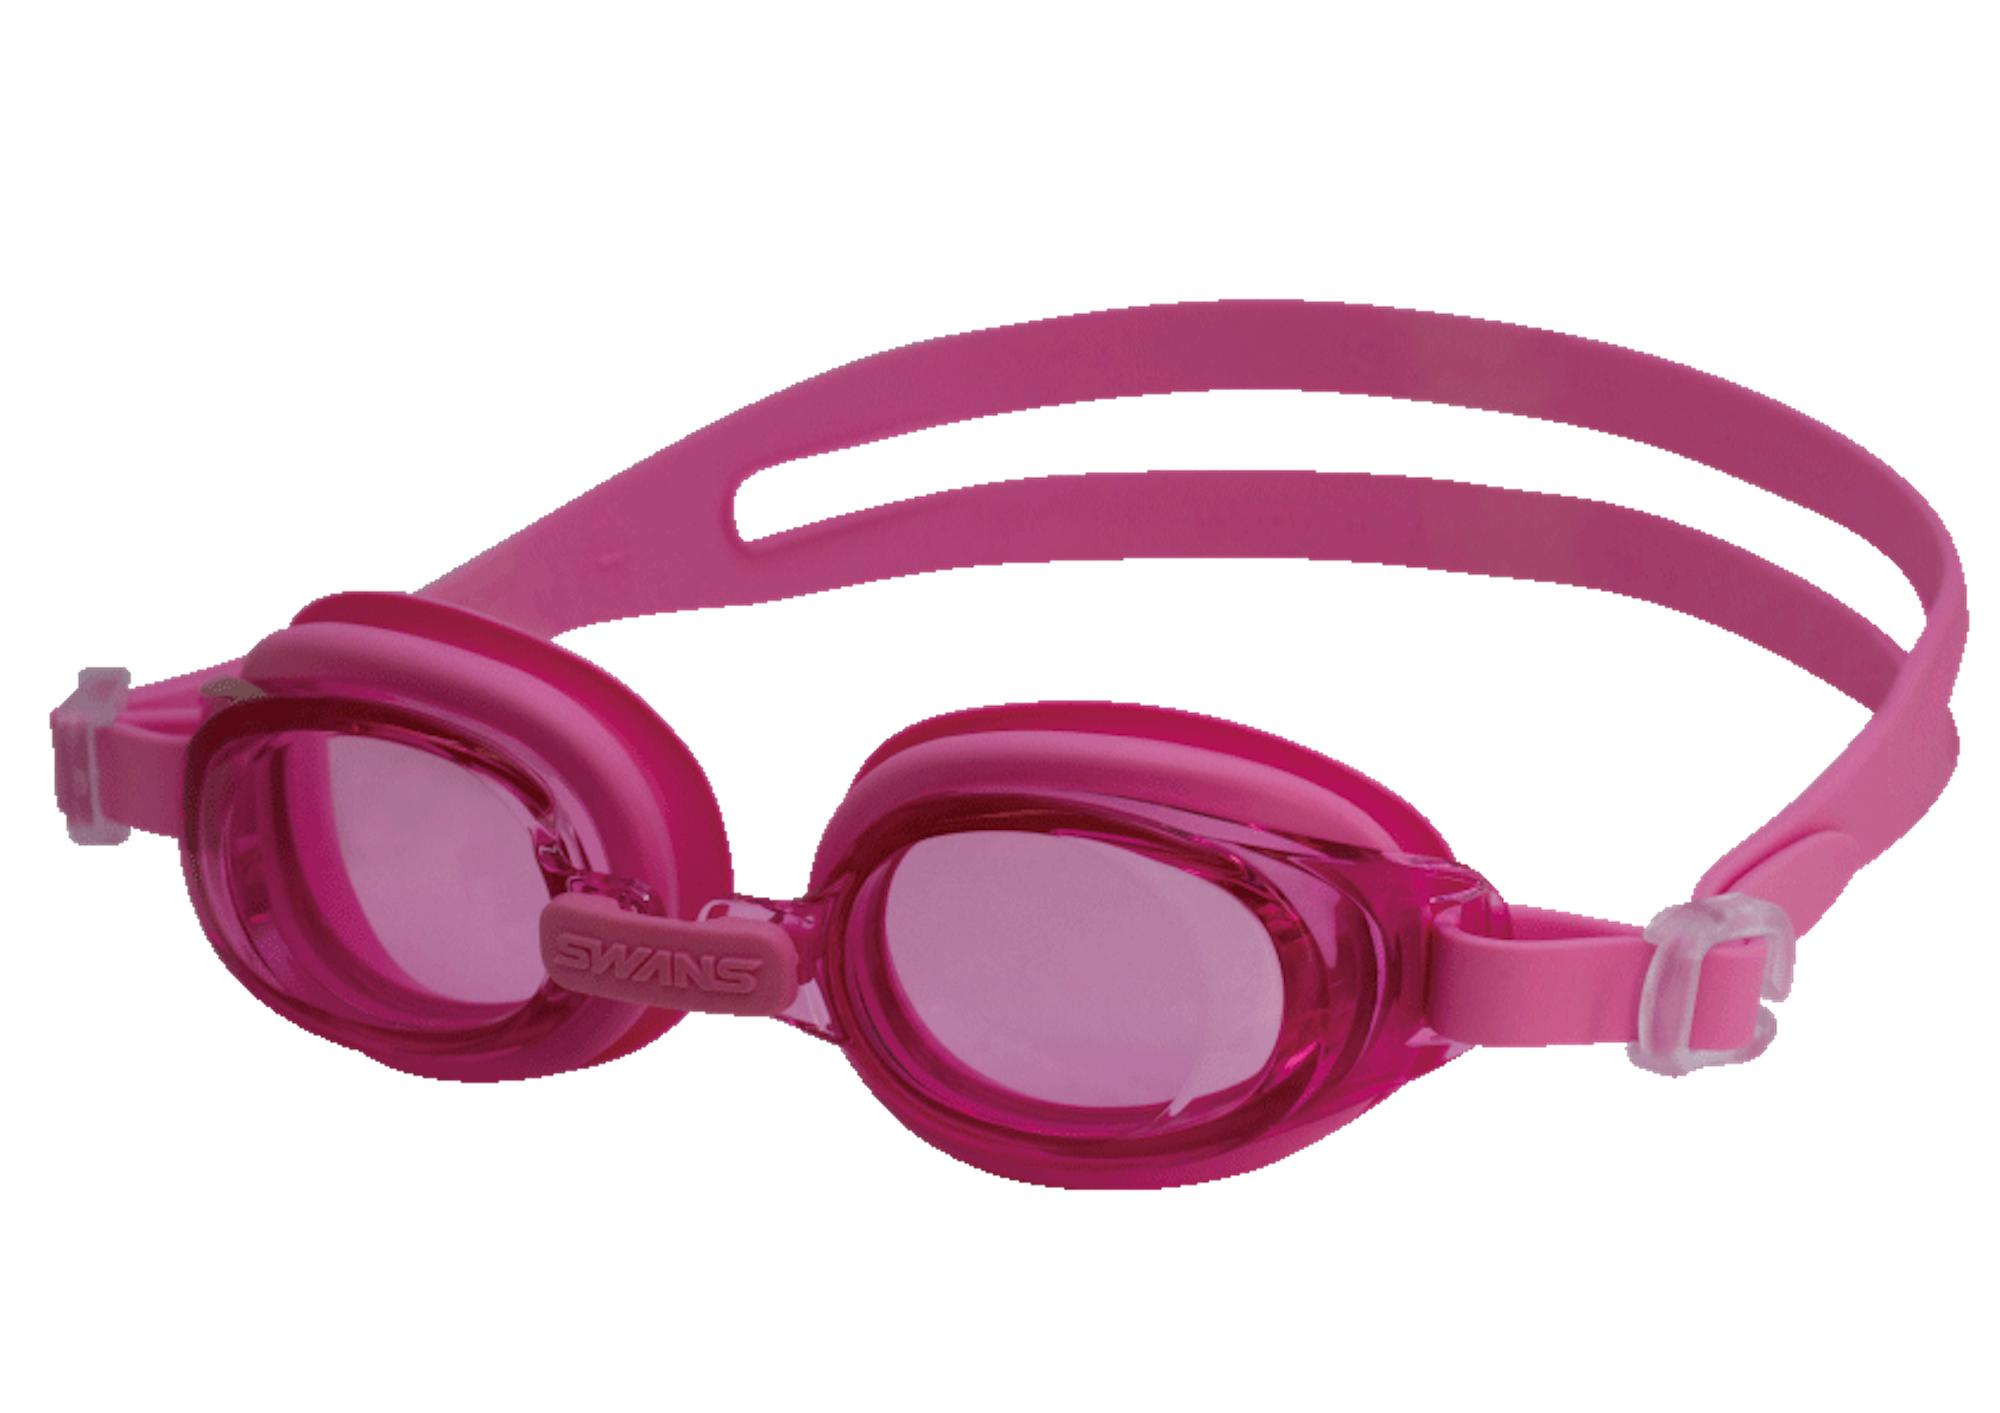 e5d6f6a2fe Latest SWANS Swiming Goggles Products